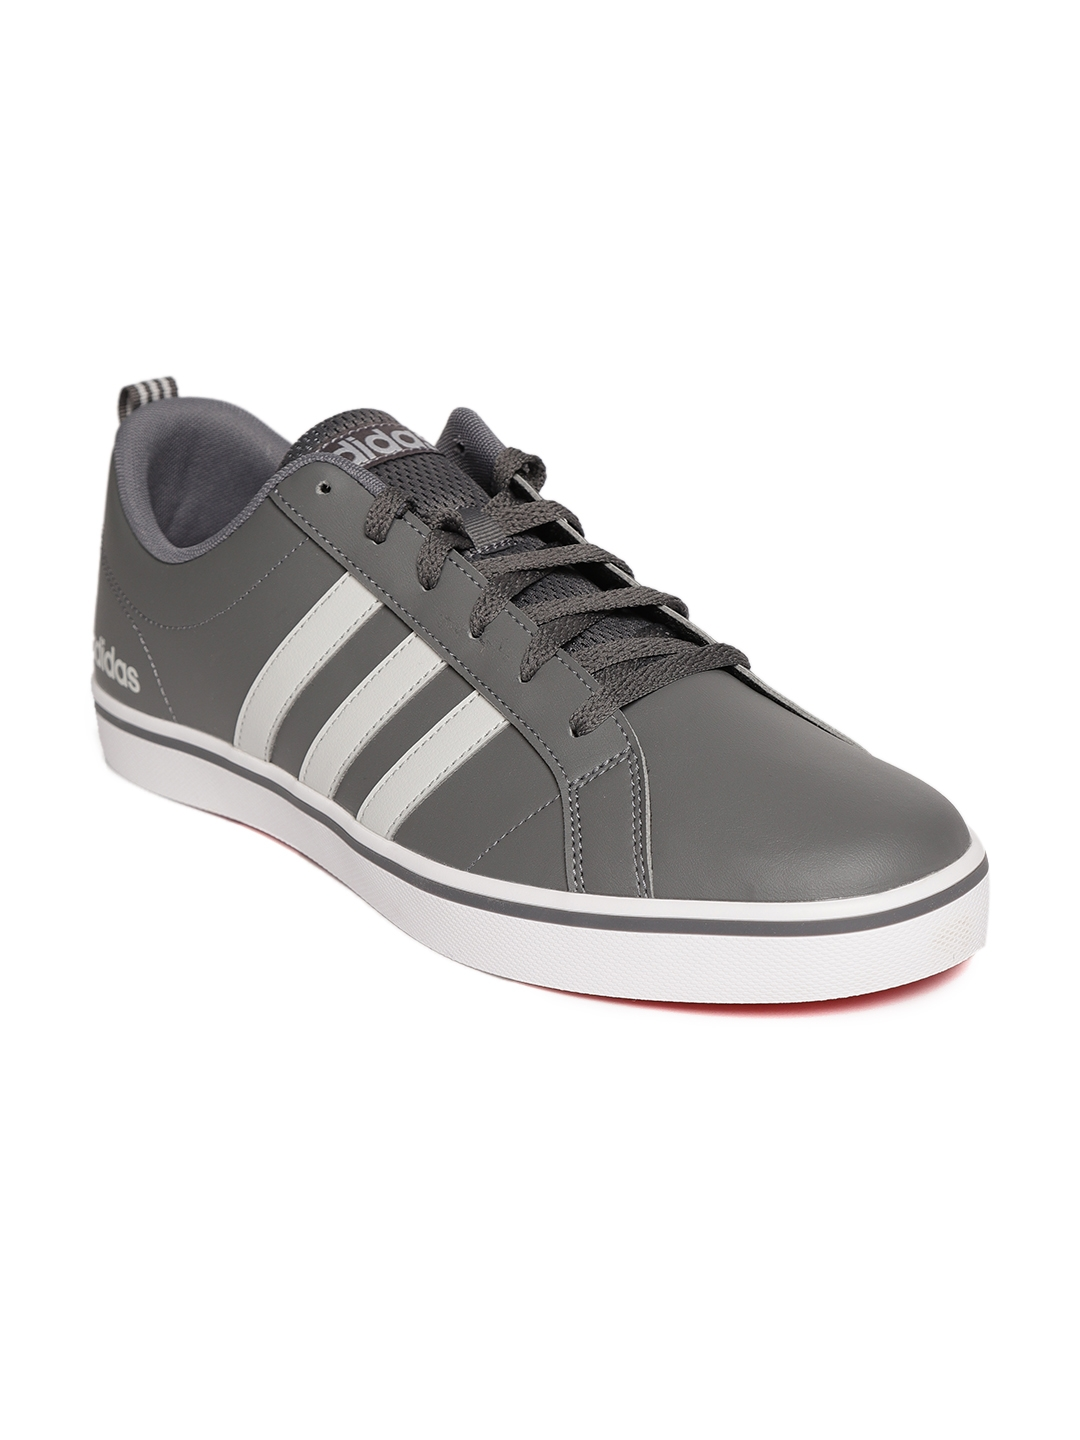 Original New Arrival Adidas VS PACE Men's Basketball Shoes Sneakers